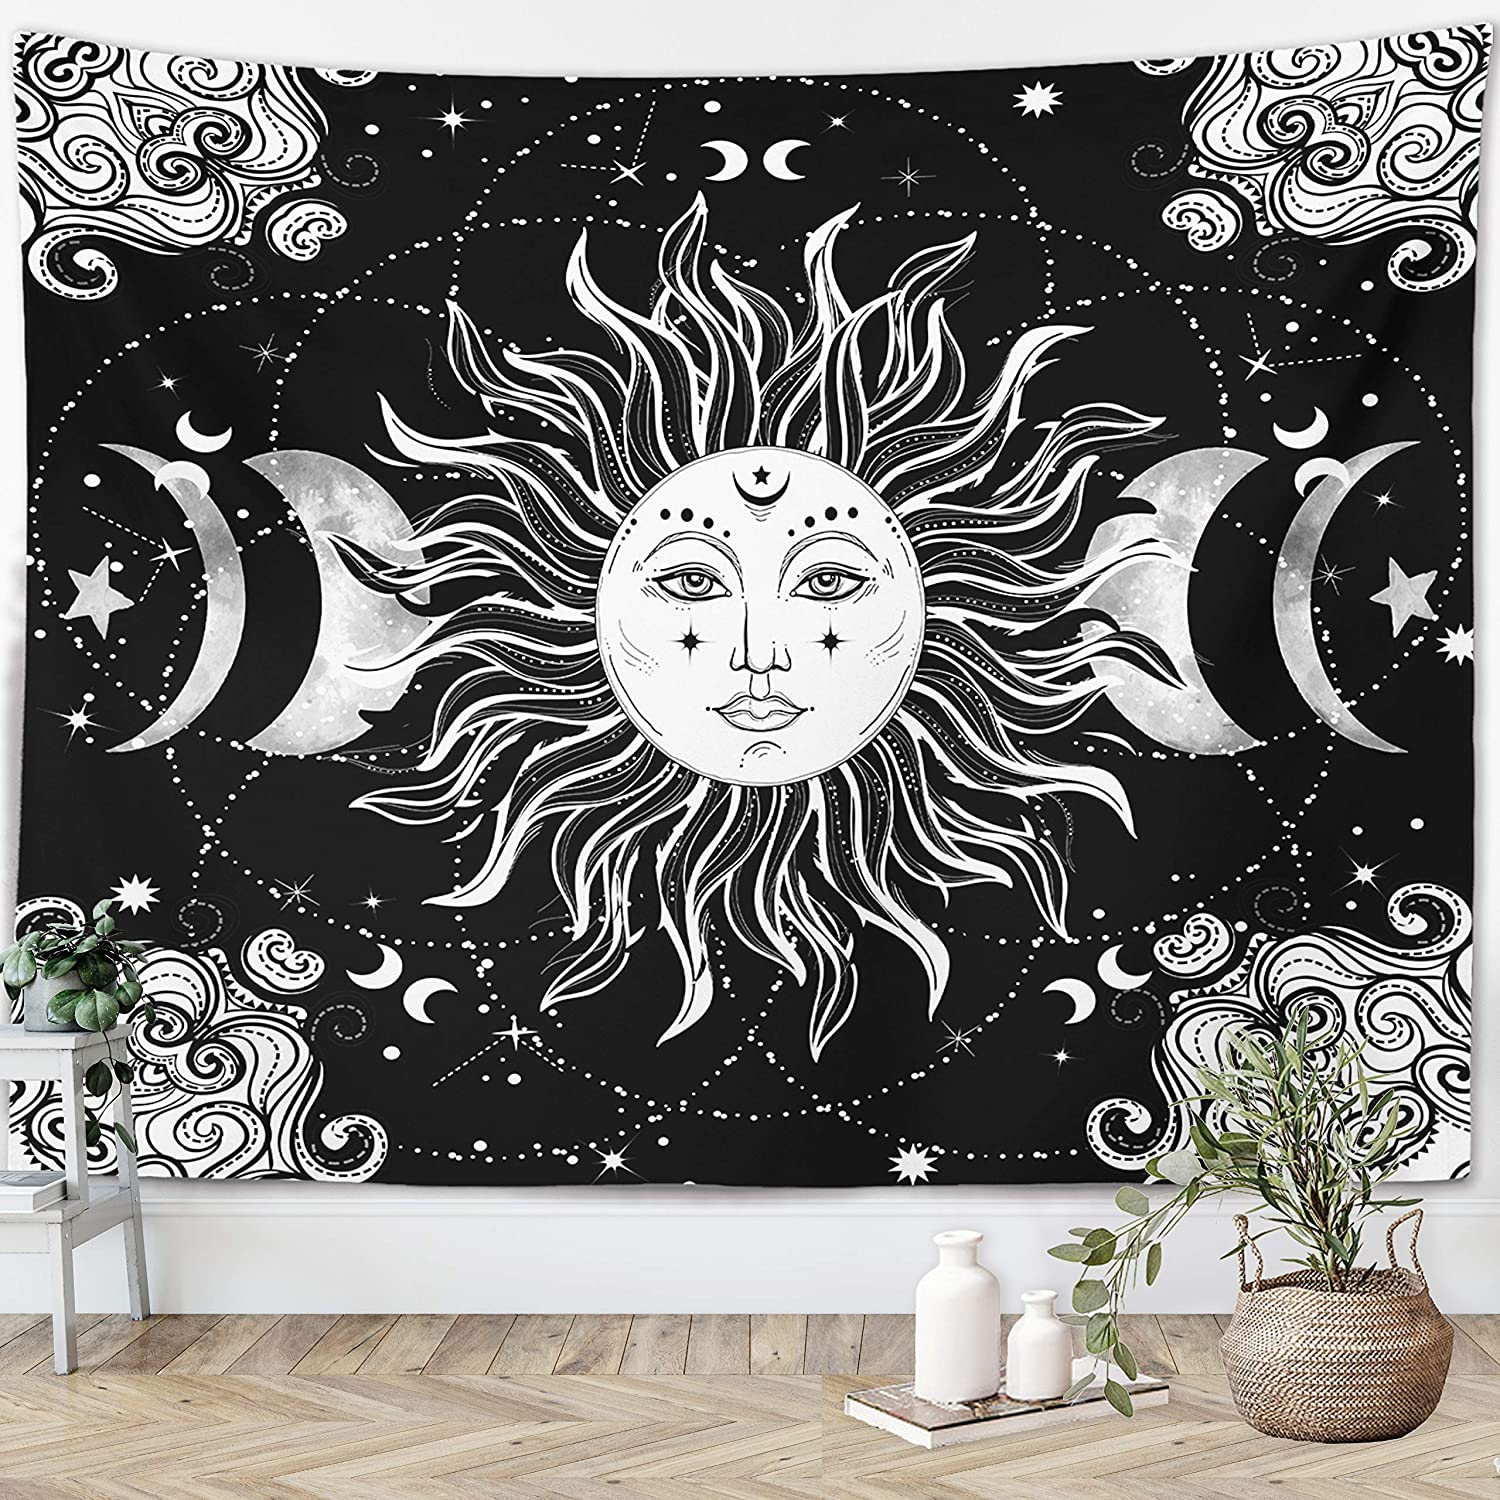 Sun Moon Tapestry Starry Night Wall Hanging Moon Landscape Constellations Lunar Phases Bohemian Eclipse Black and White Wall Decor Astrology Galaxy Boho Celestial Tapestry (Sun, 51